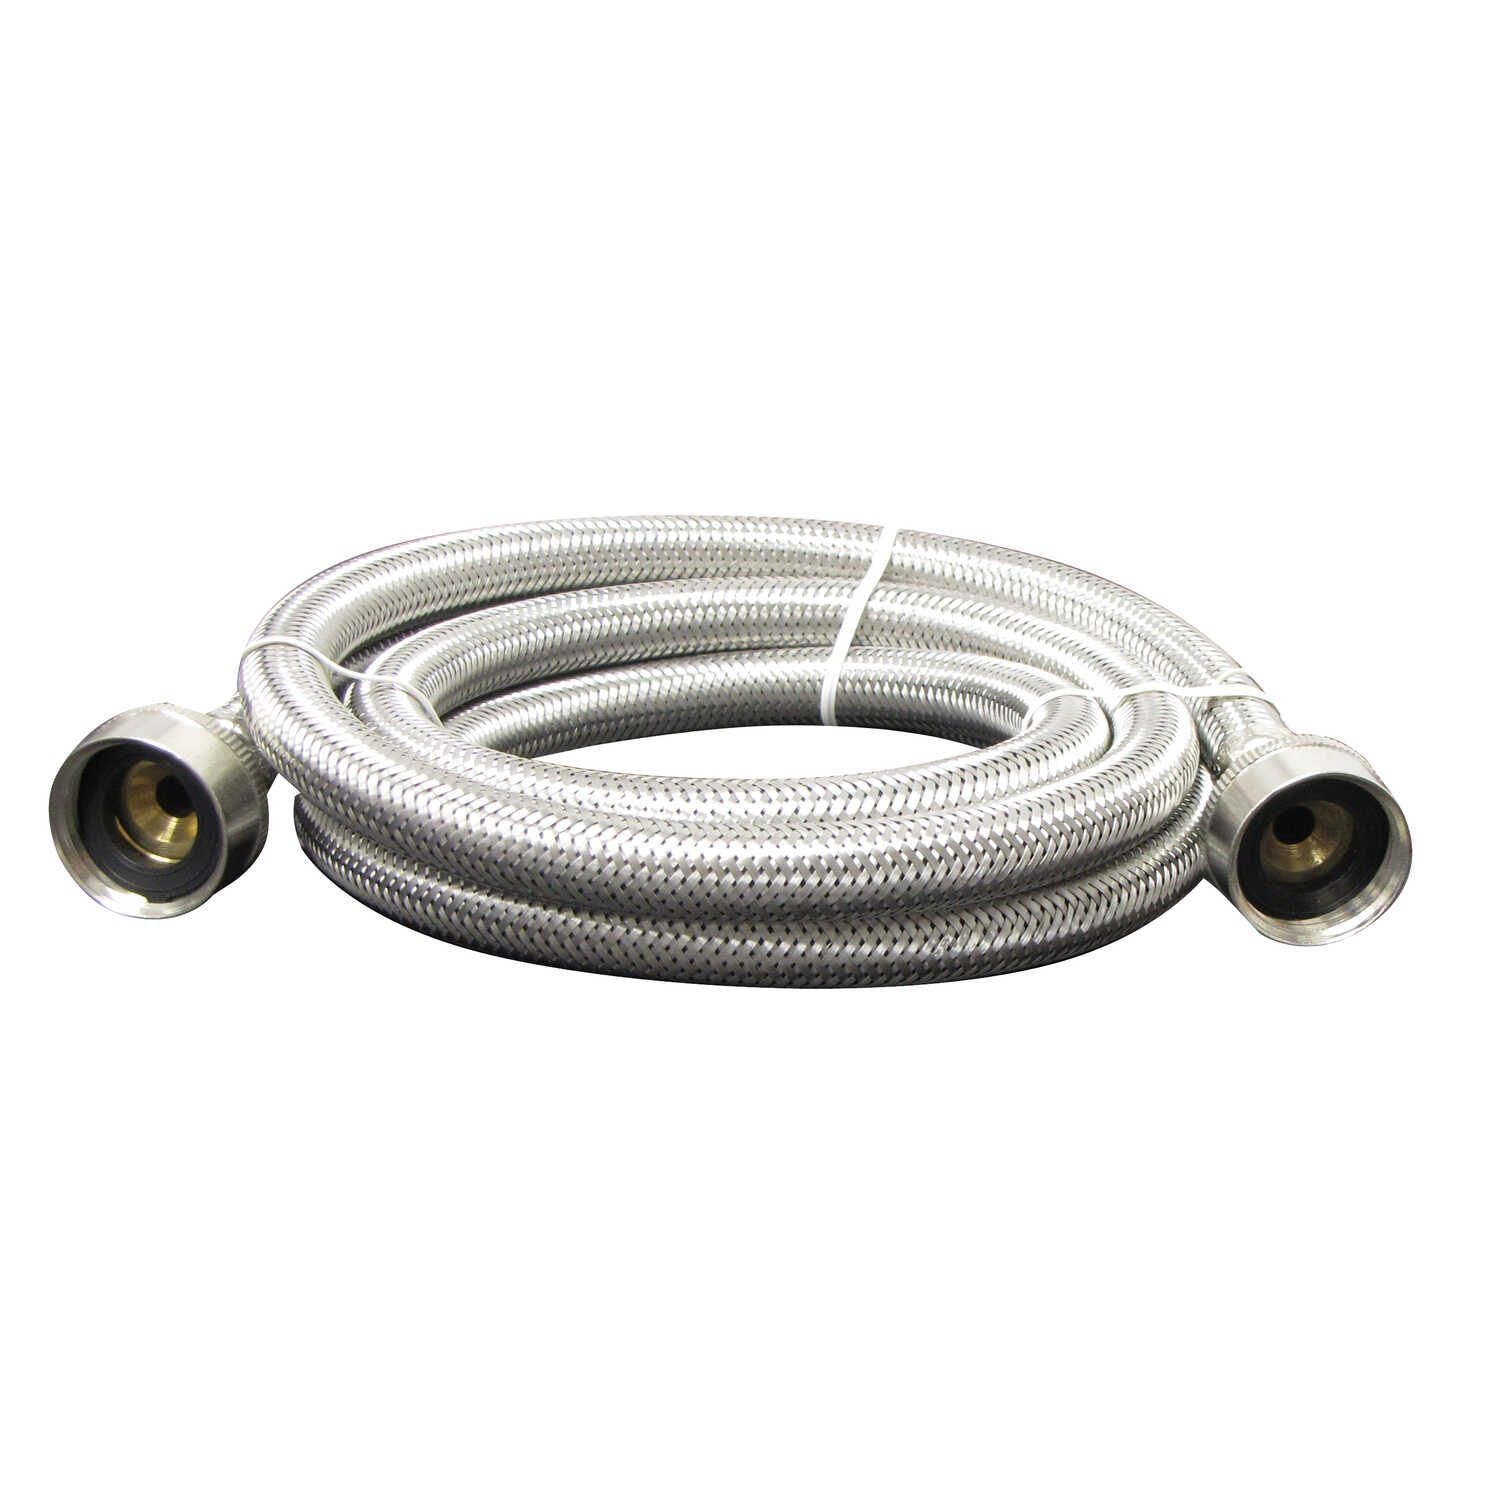 Plumb Pak  72 in. Stainless Steel  Washing Machine Supply Line